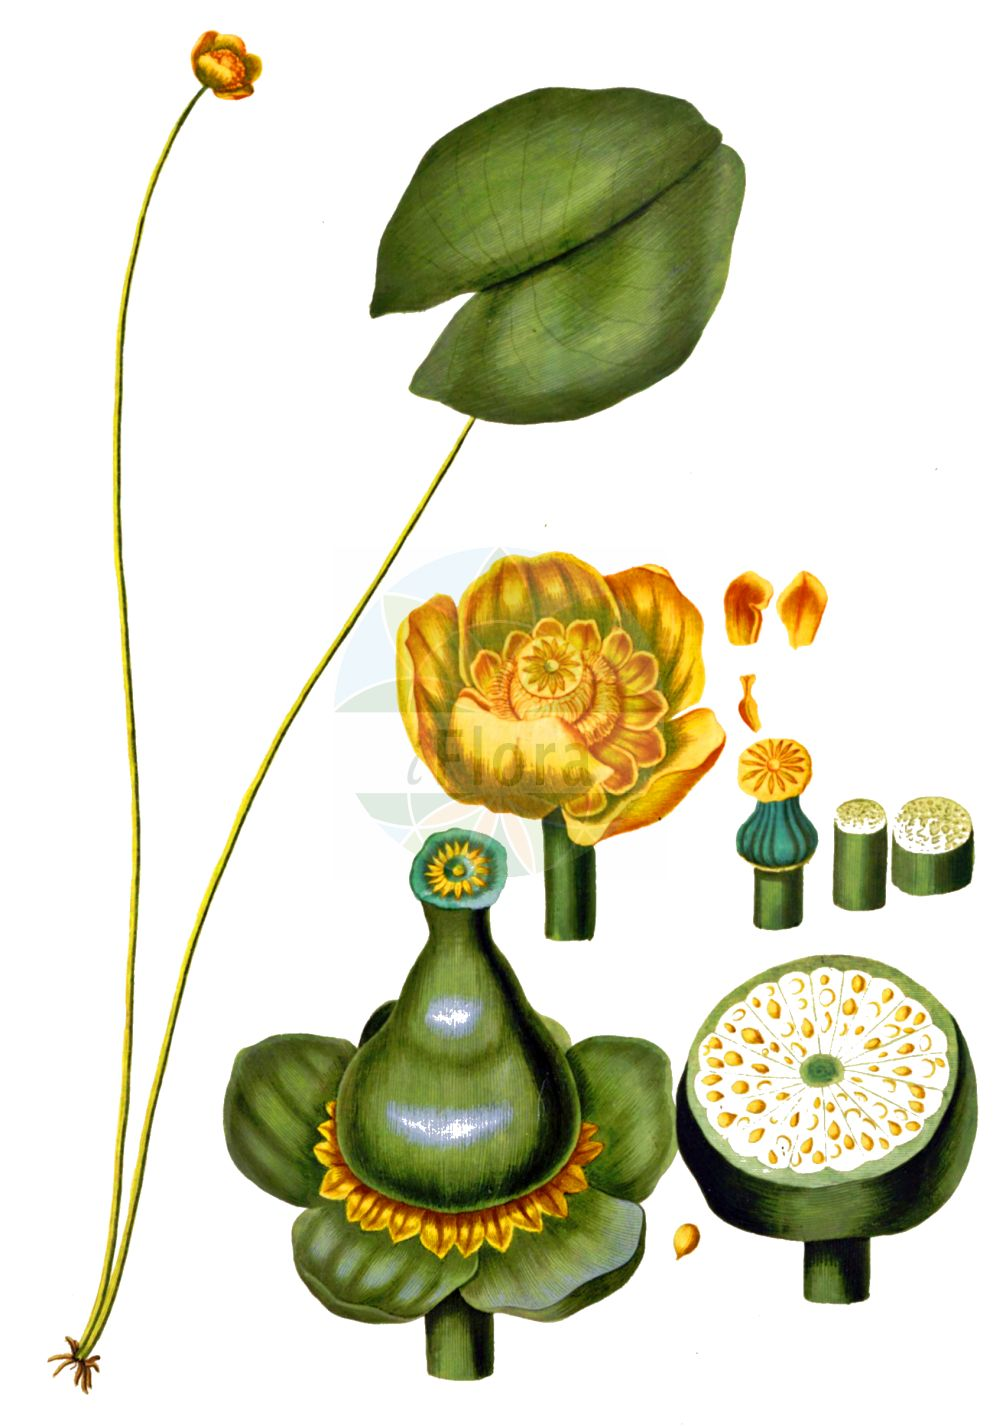 Historische Abbildung von Nuphar lutea (Gelbe Teichrose - Yellow Water-lily). Das Bild zeigt Blatt, Bluete, Frucht und Same. ---- Historical Drawing of Nuphar lutea (Gelbe Teichrose - Yellow Water-lily).The image is showing leaf, flower, fruit and seed.(Nuphar lutea,Gelbe Teichrose,Yellow Water-lily,Nenuphar luteum,Nuphar lutea,Nuphar sericea,Nymphaea lutea,Nymphozanthus luteus,Gelbe Teichrose,Grosse Teichrose,Mummel,Yellow Water-lily,Cow Lily,Spatterdock,Yellow Pond Lily,Nuphar,Teichrose,Pond-lily,Nymphaeaceae,Seerosengewaechse,Water-lily family,Blatt,Bluete,Frucht,Same,leaf,flower,fruit,seed,Oeder (1761-1883))